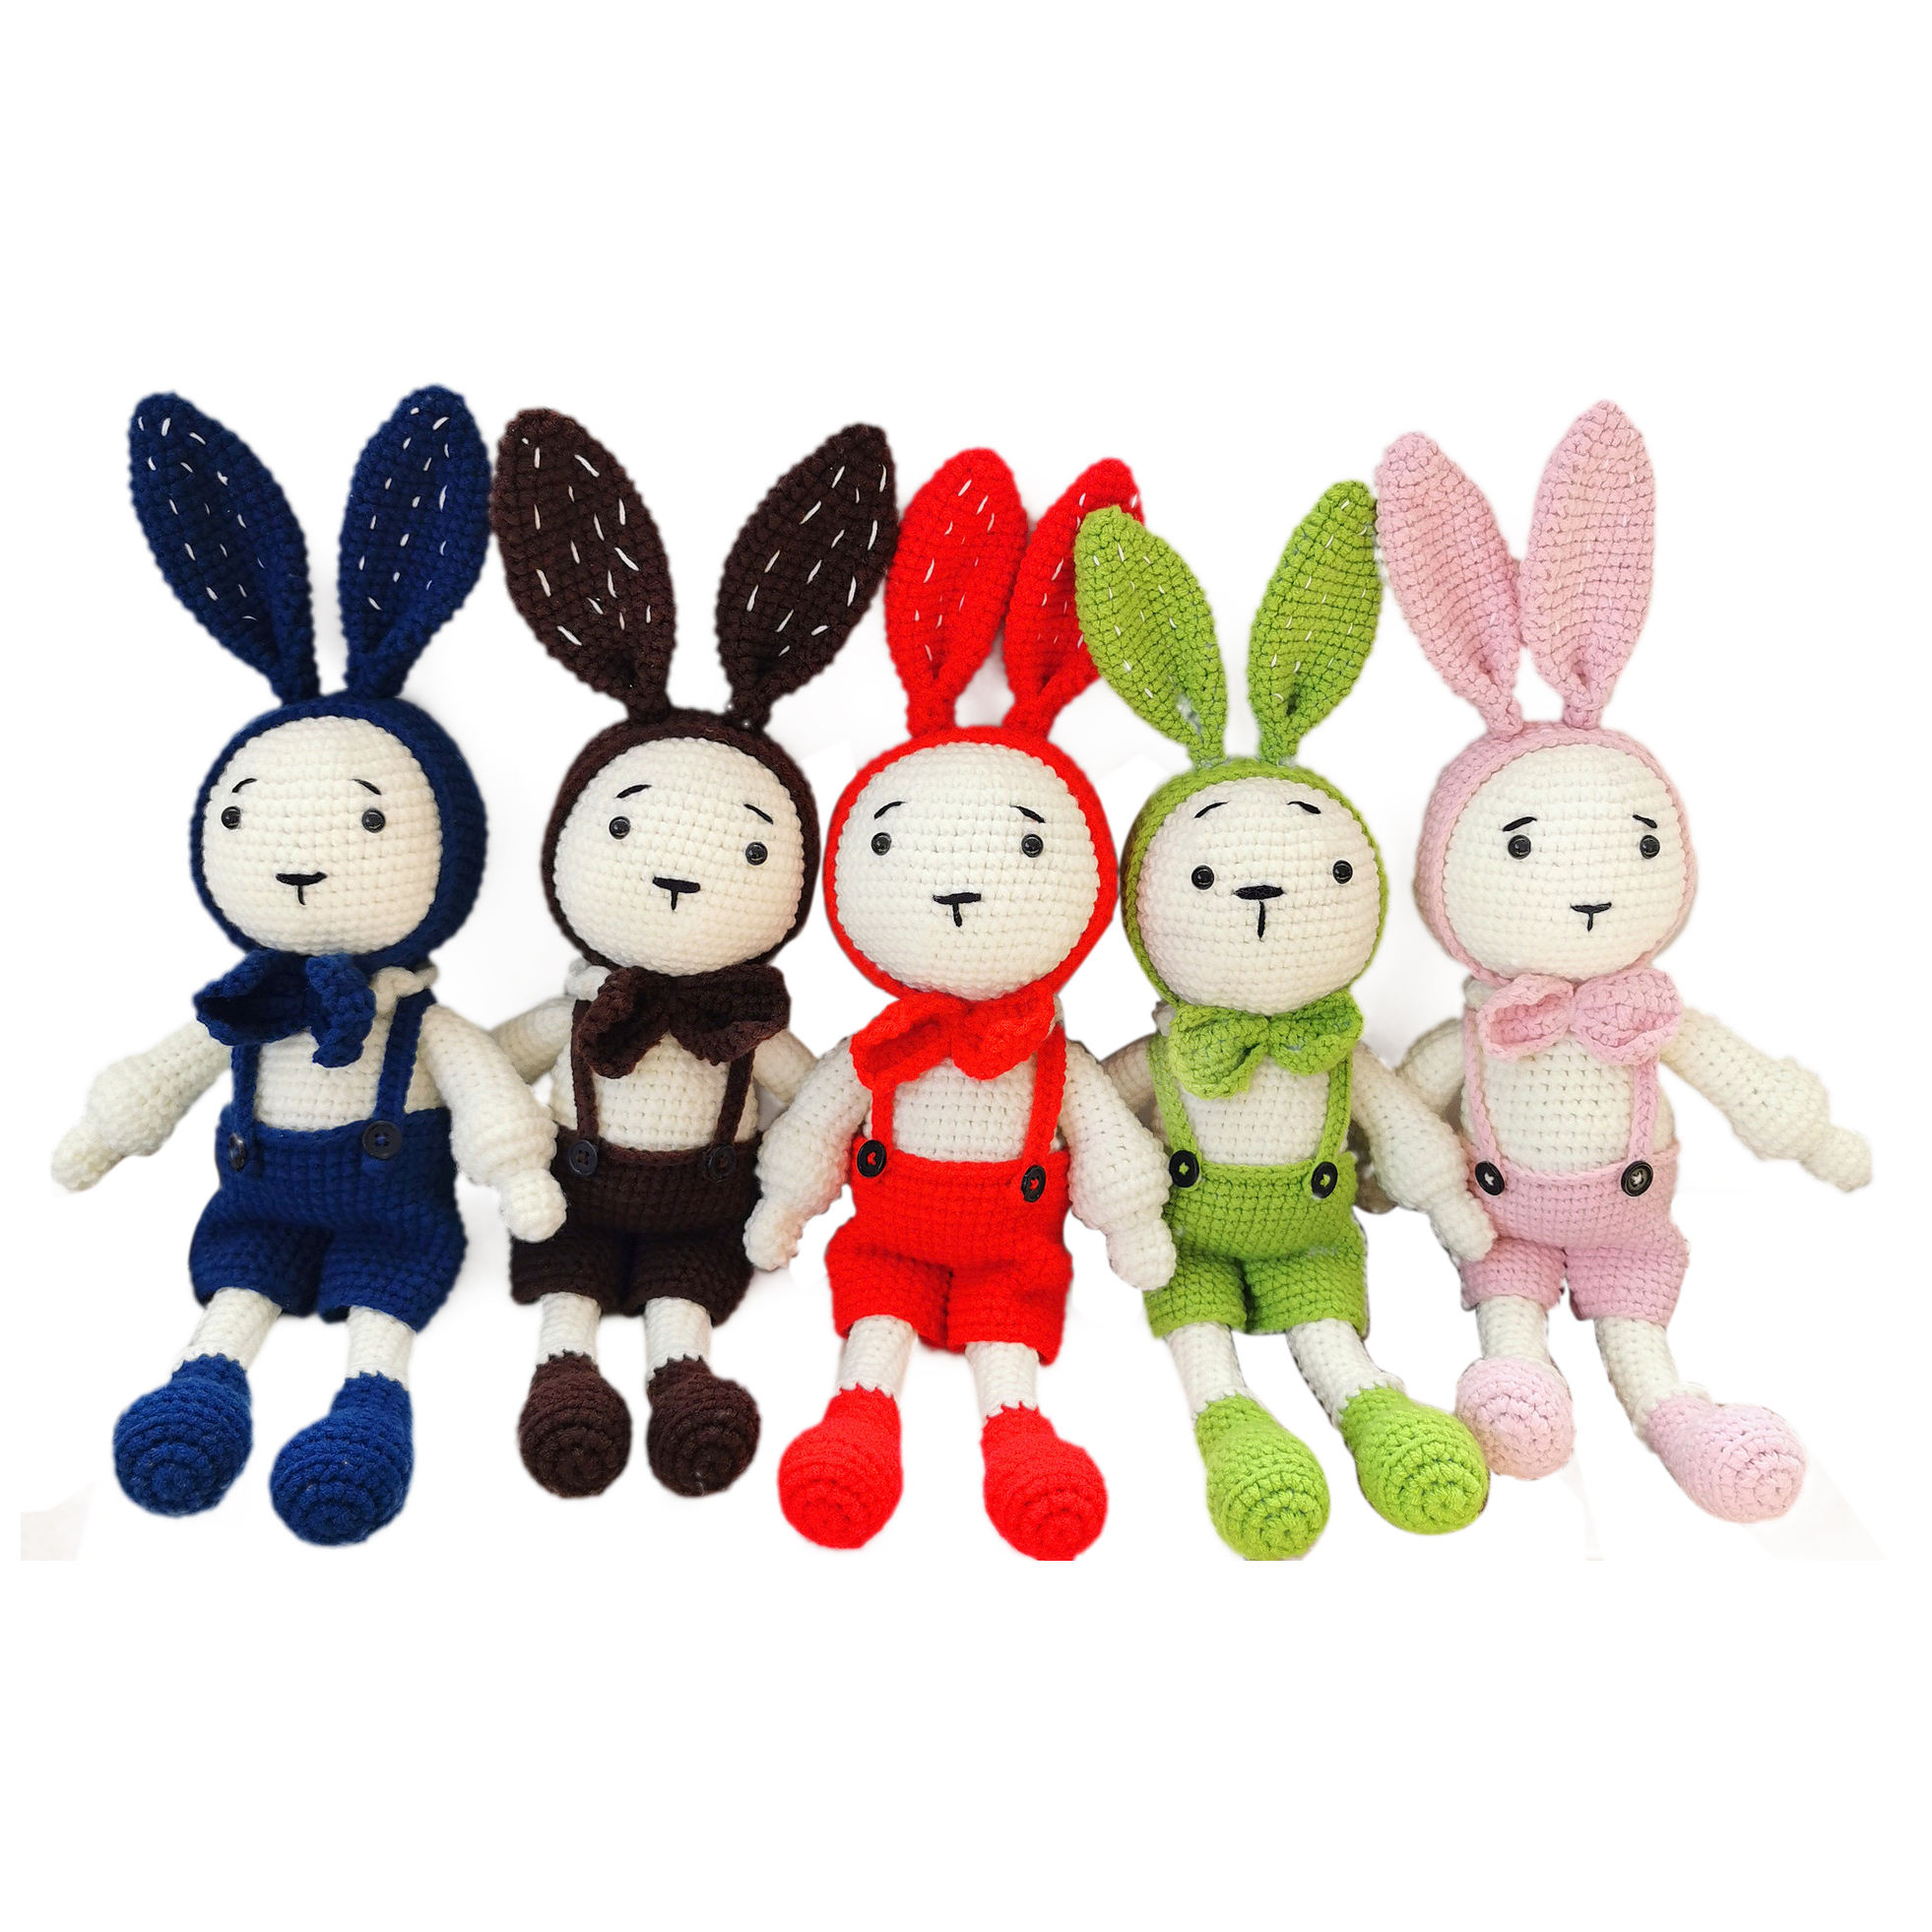 Wholesales handmade DIY knitted crochet plush rabbit toys bunny doll